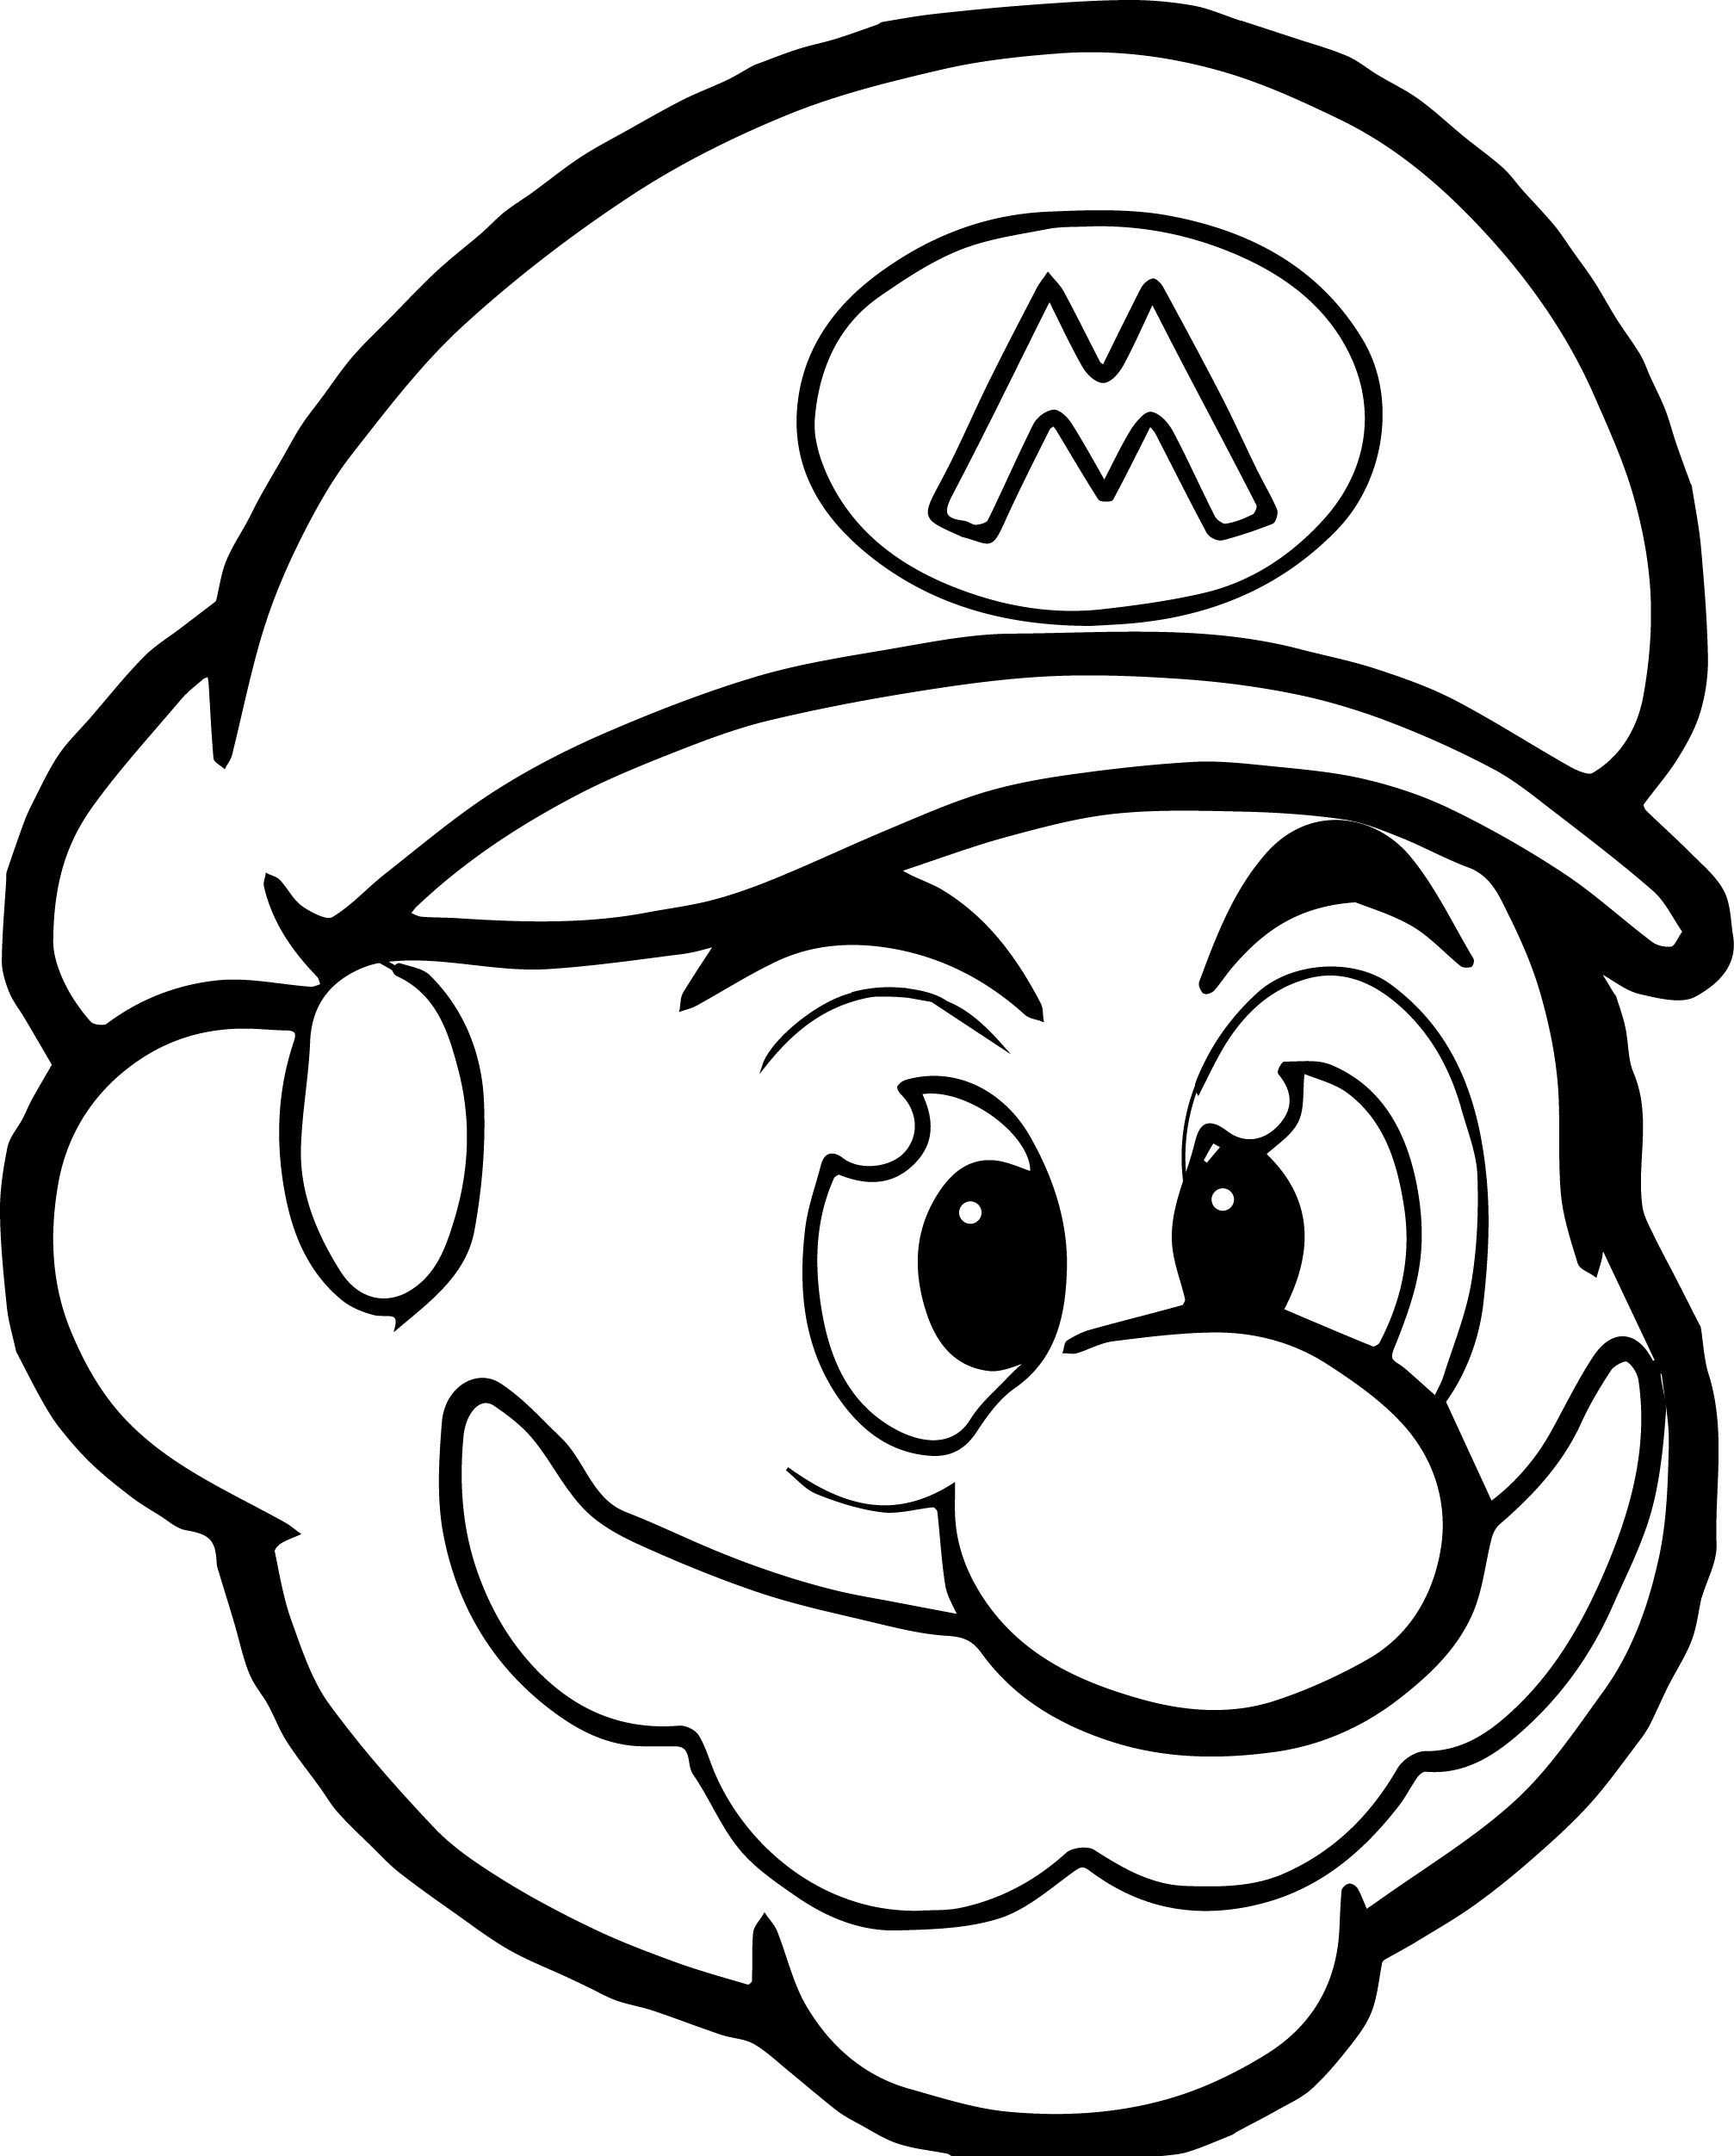 Marios Head Coloring Pages